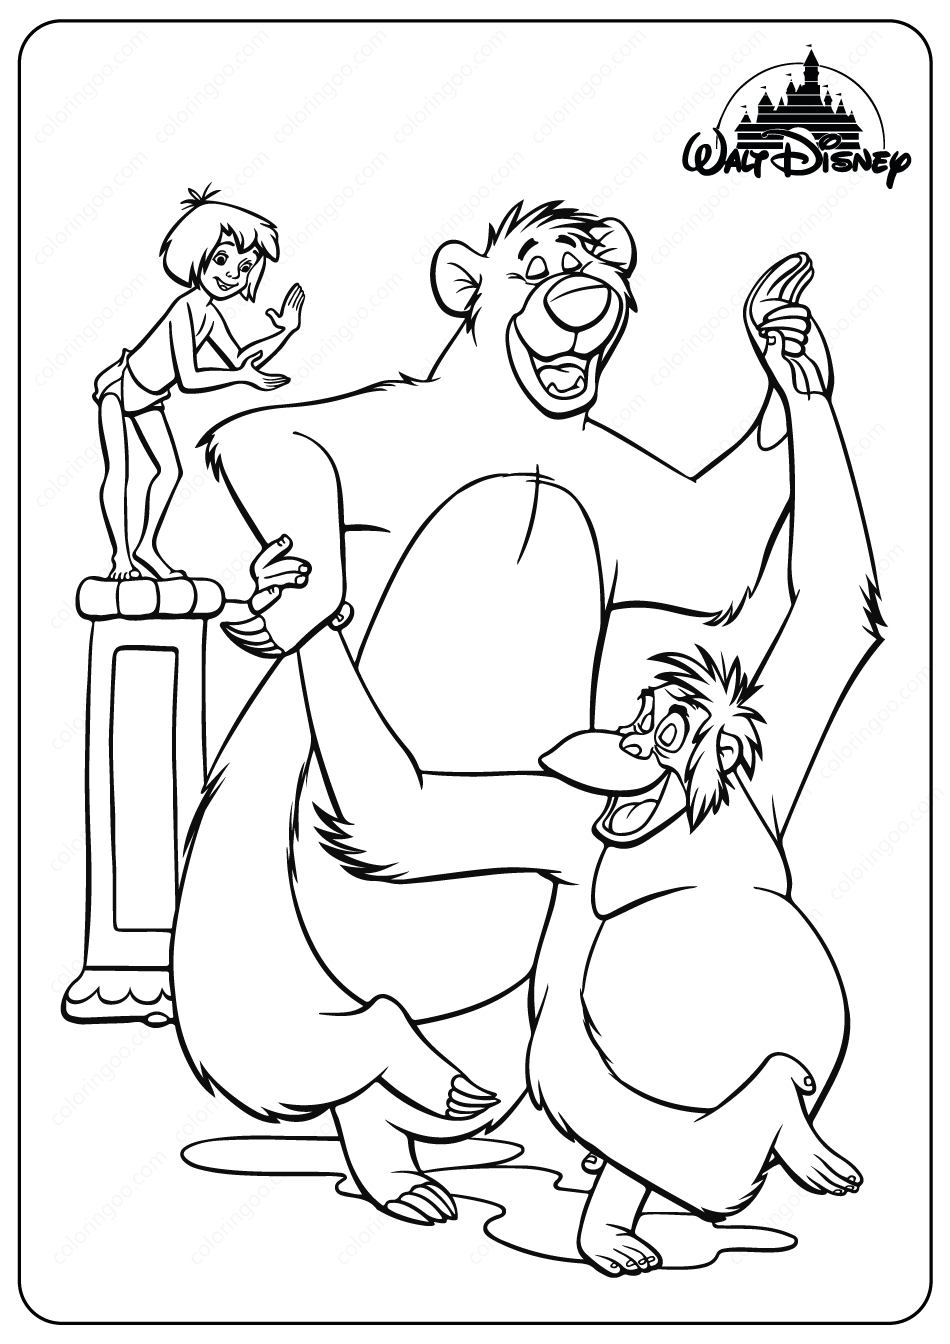 the jungle book coloring pages jungle book coloring pages top 100 images free printable pages jungle the book coloring